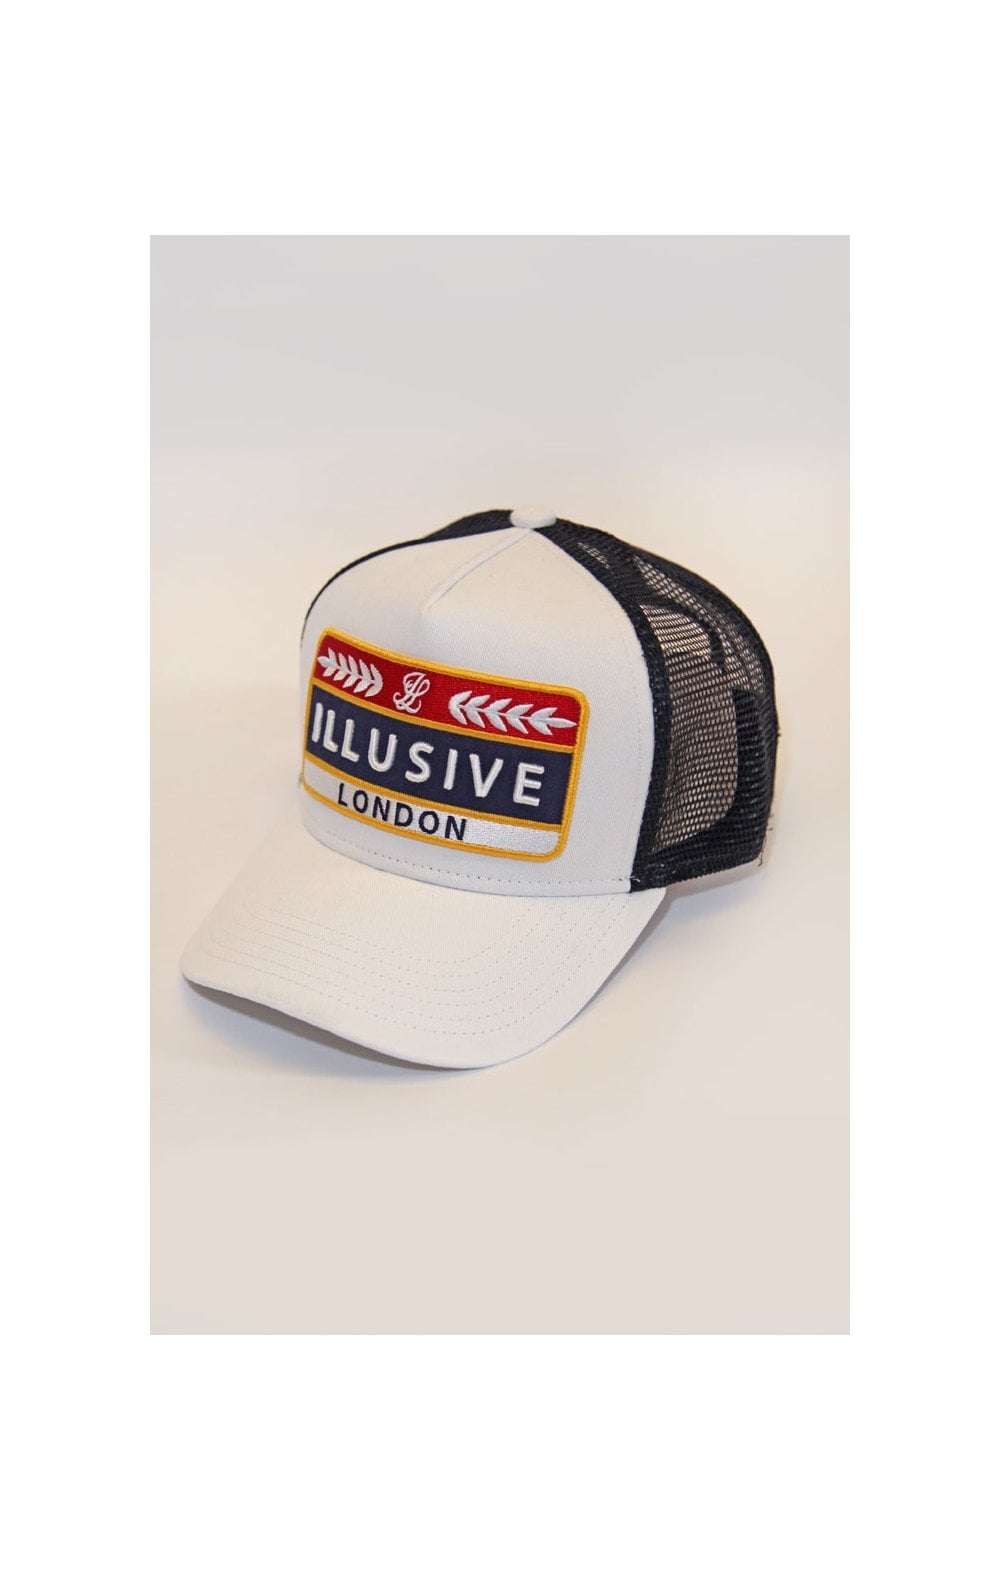 Load image into Gallery viewer, Illusive London Patch Trucker - White